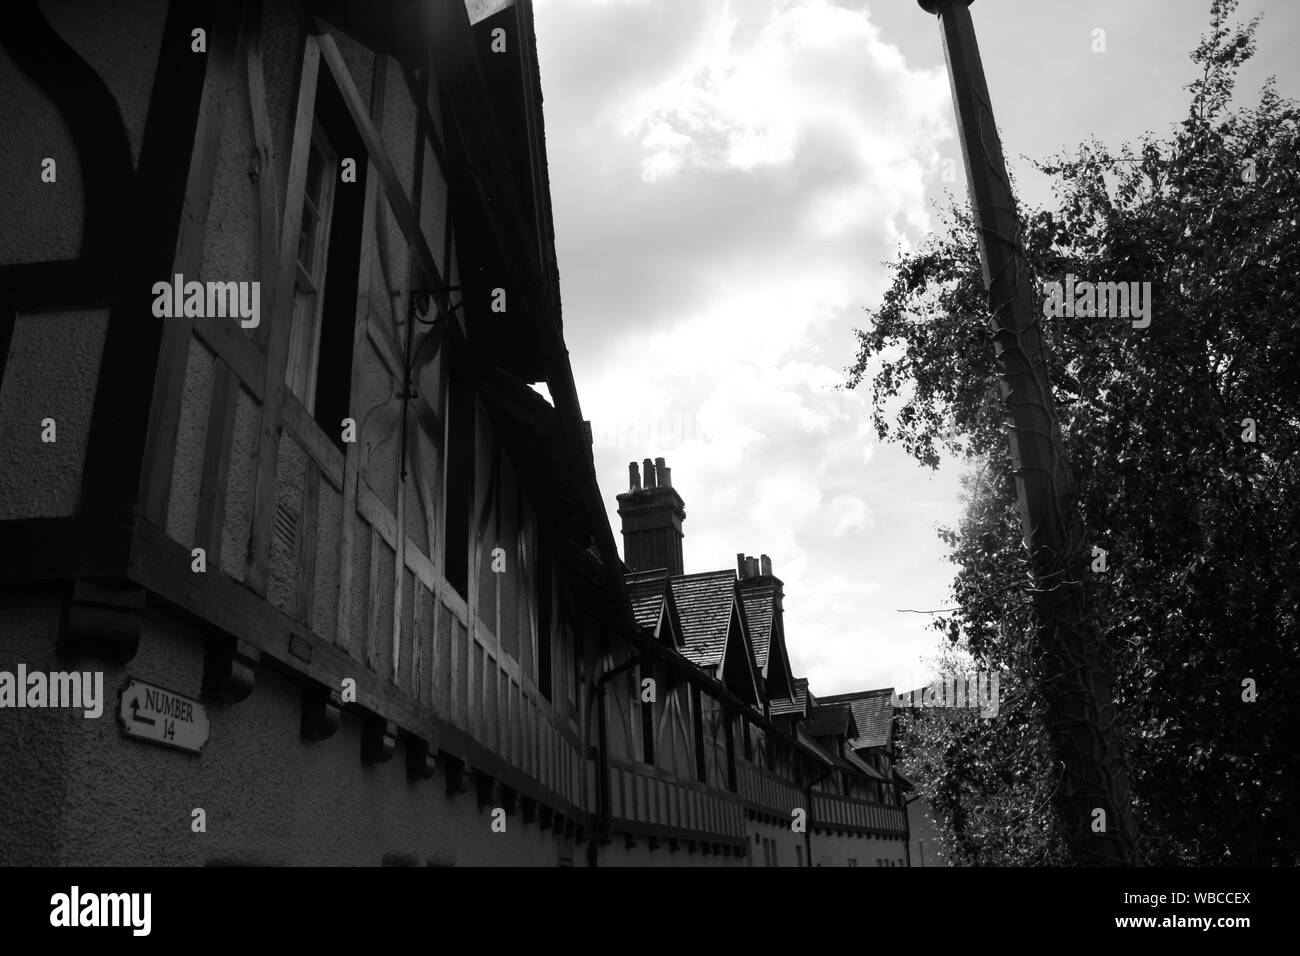 Dean Village Roofs Stock Photo Alamy